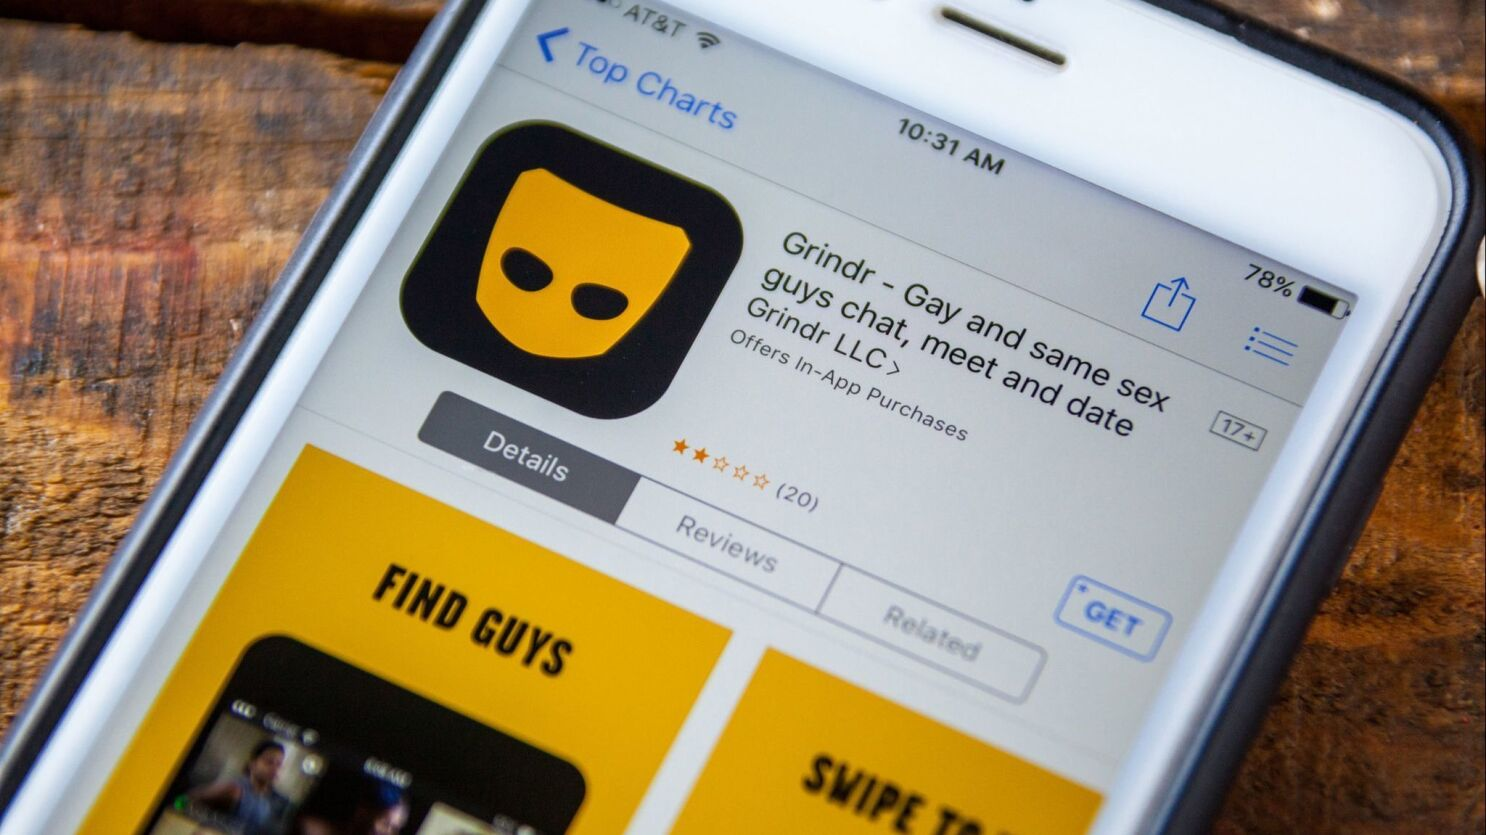 Account use grindr without How to